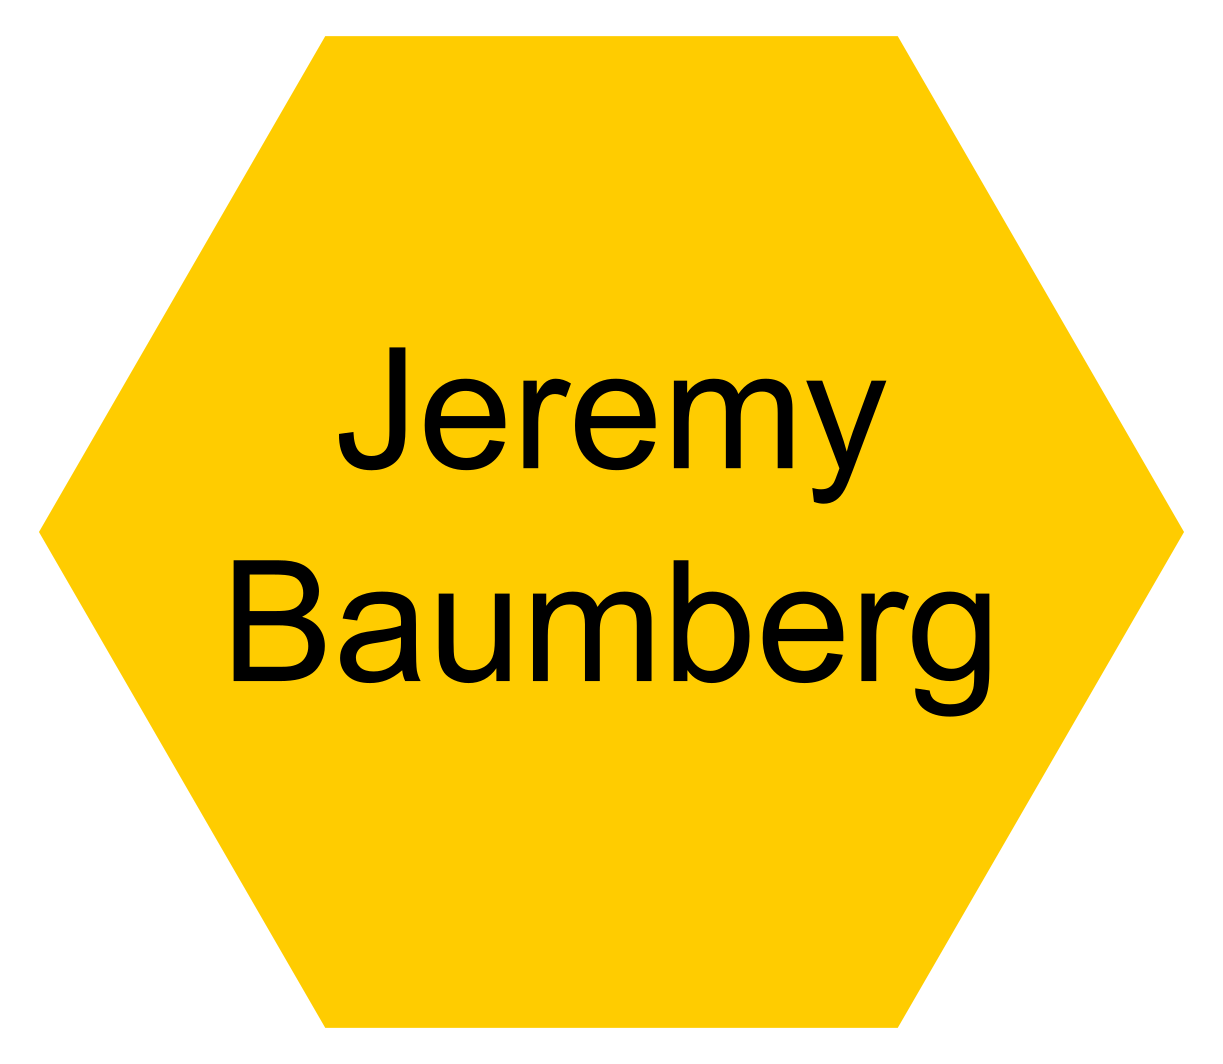 Prof. Jeremy Baumberg (University of Cambridge: Principal Investigator) - Click this icon to reveal their contact details.